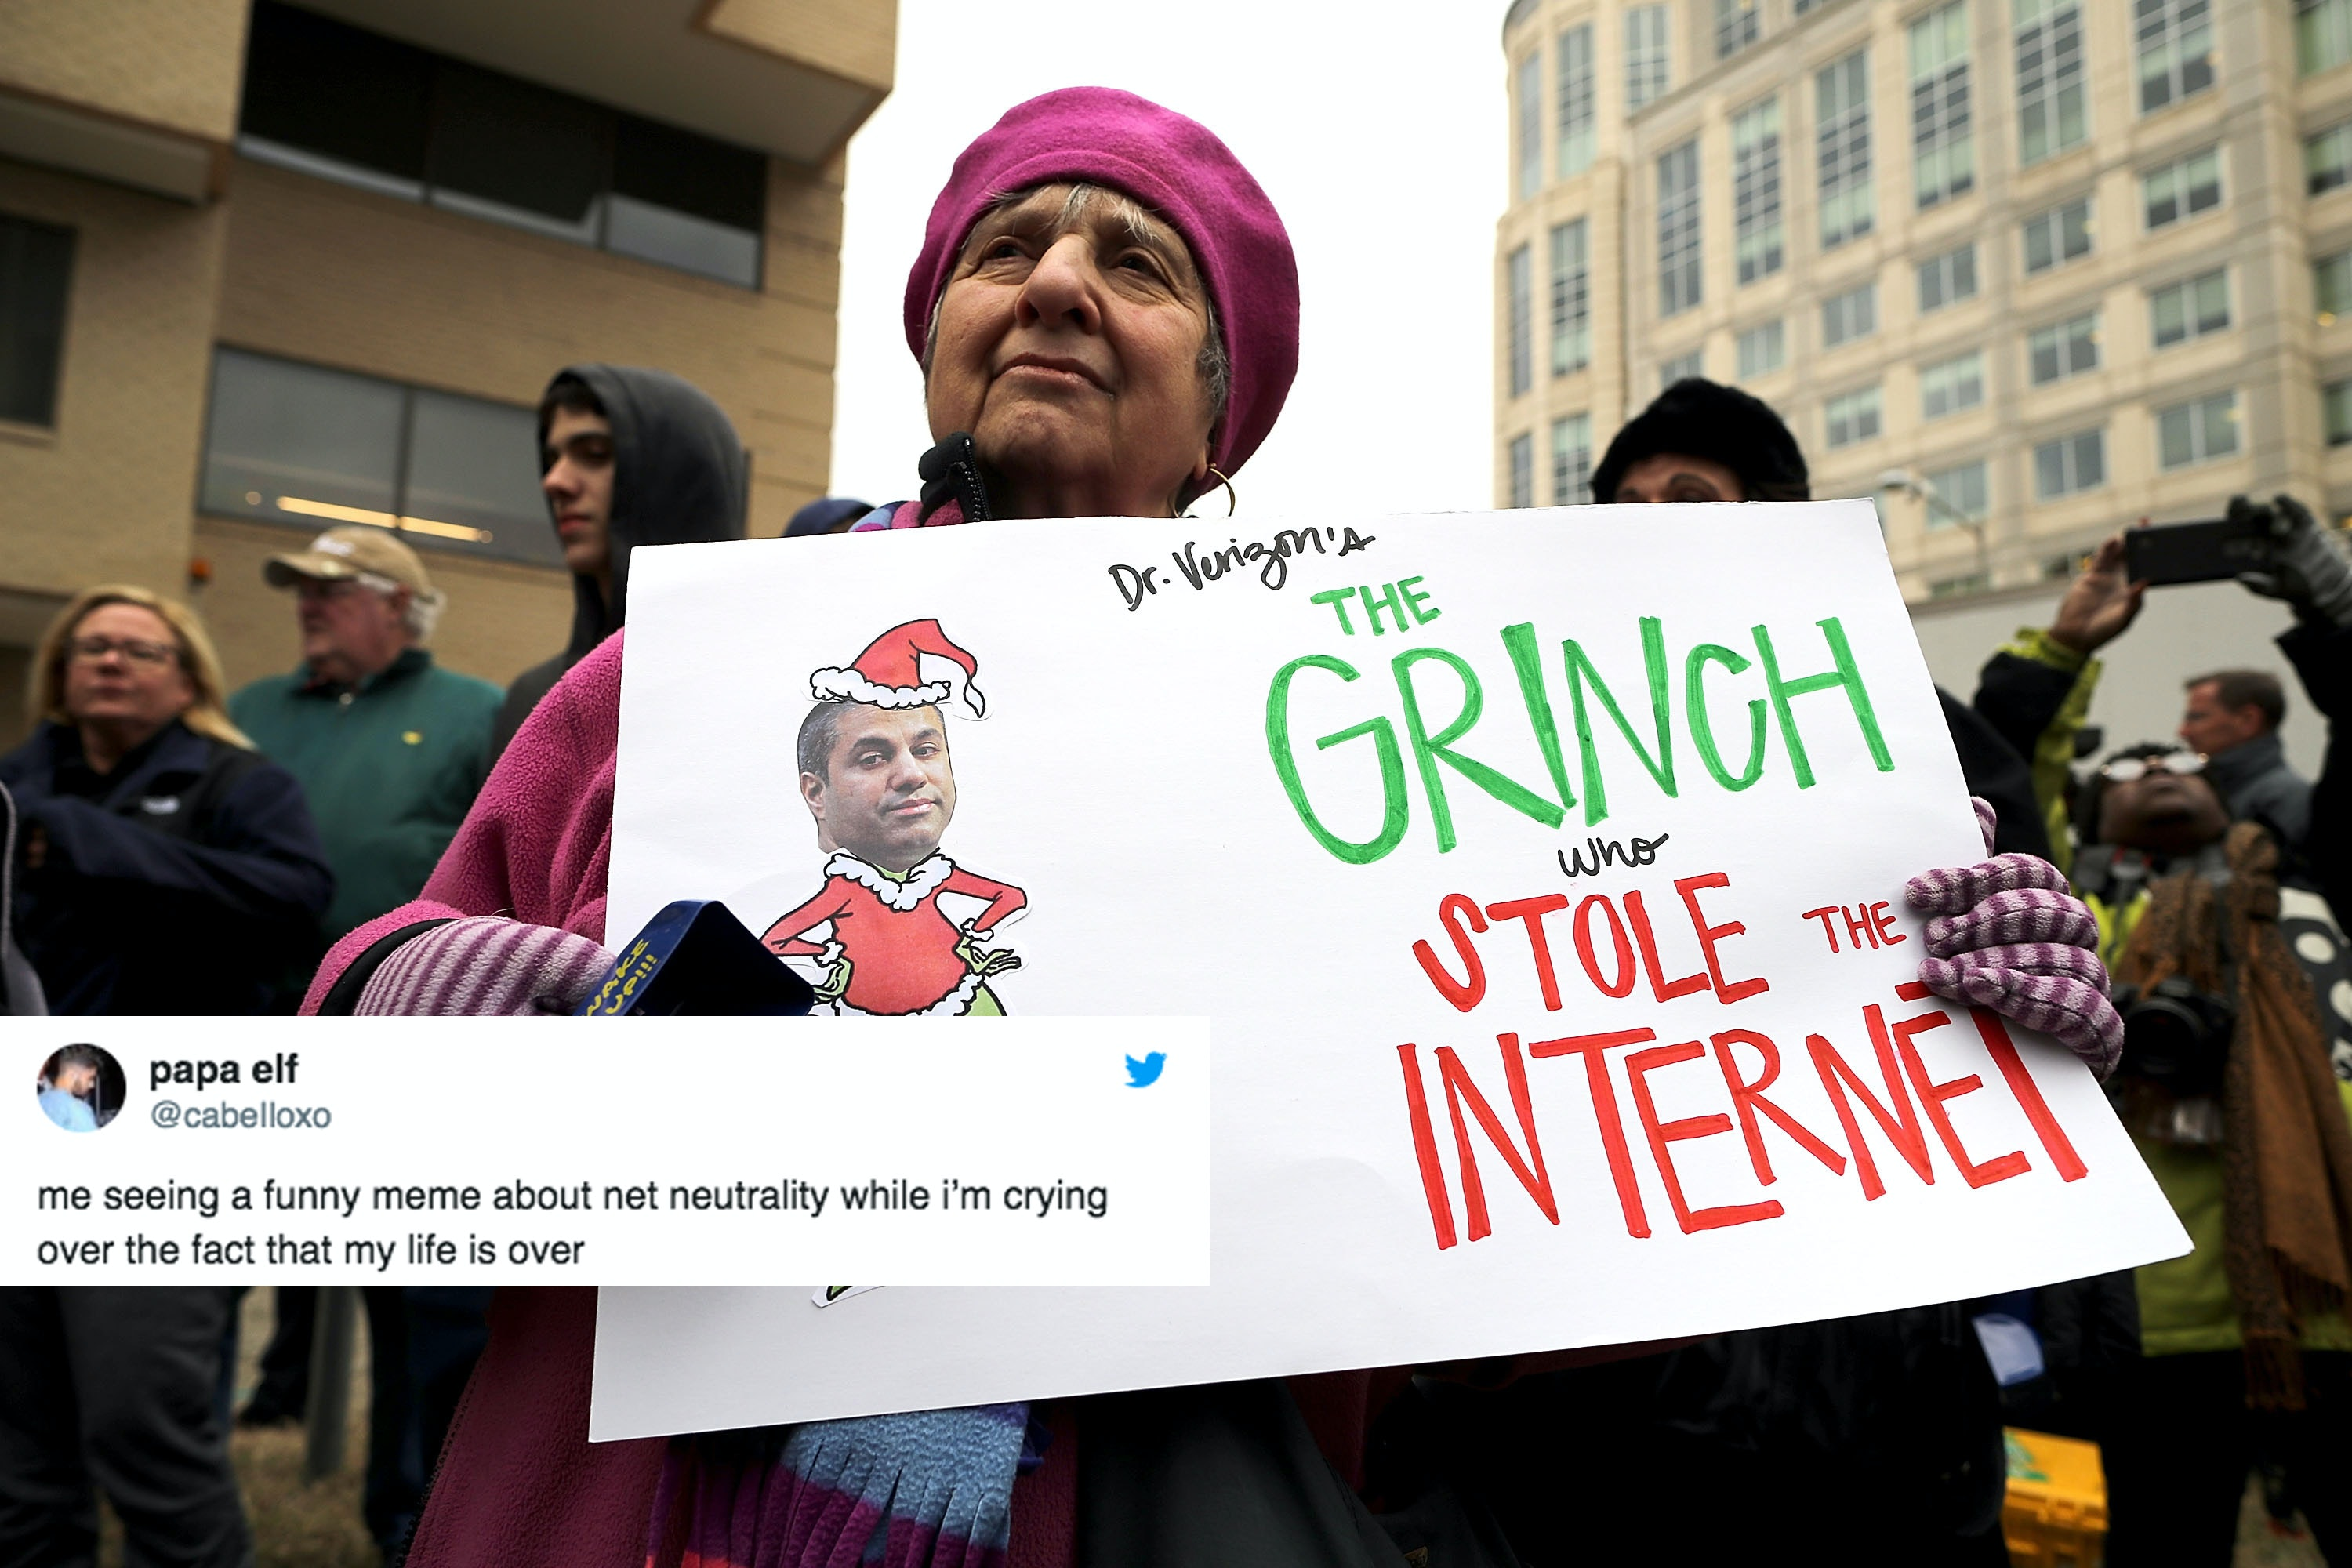 cdf3be38 af07 4c85 9294 8128f8ed958c memeinternet?w=970&h=582&fit=crop&crop=faces&auto=format&q=70 these net neutrality memes about the repeal are peak internet